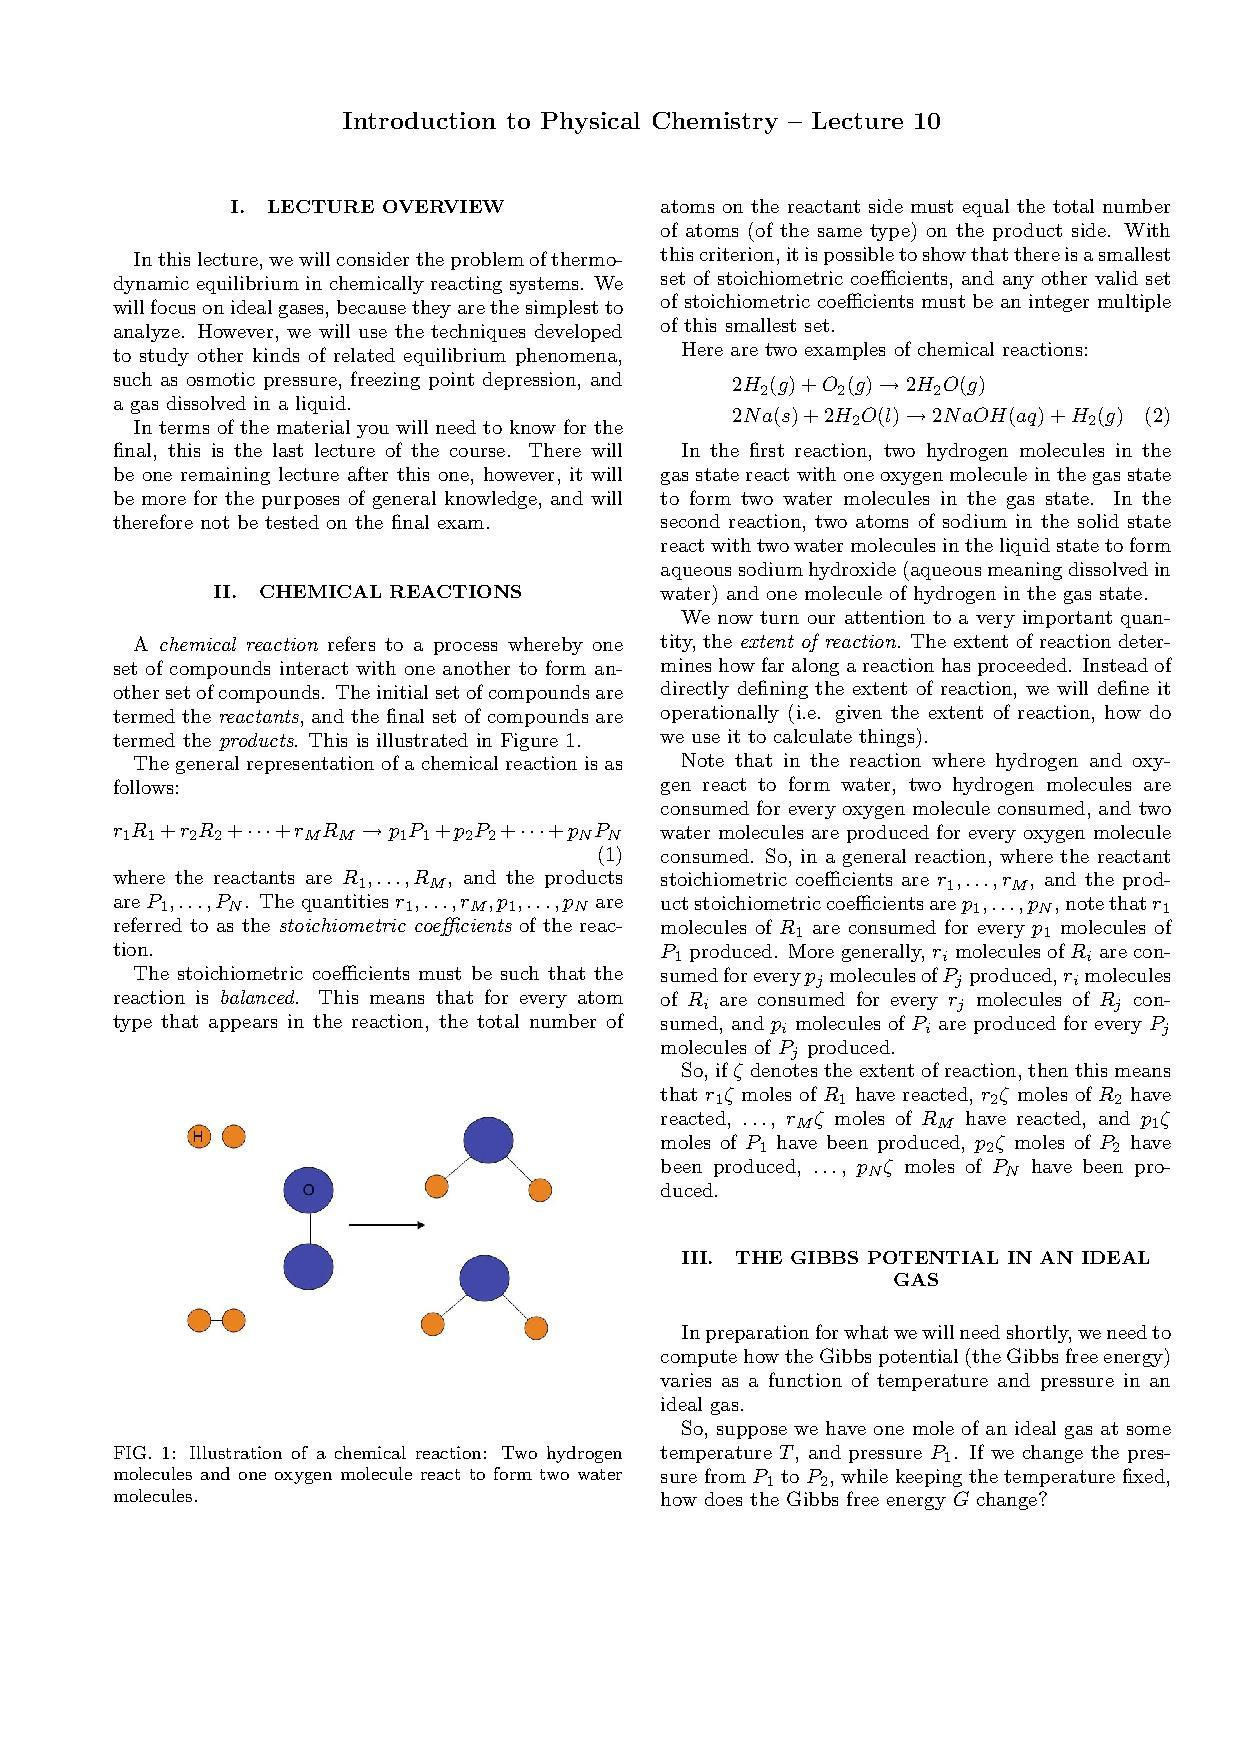 File:Introduction to Physical Chemistry Lecture 10 pdf - Wikimedia